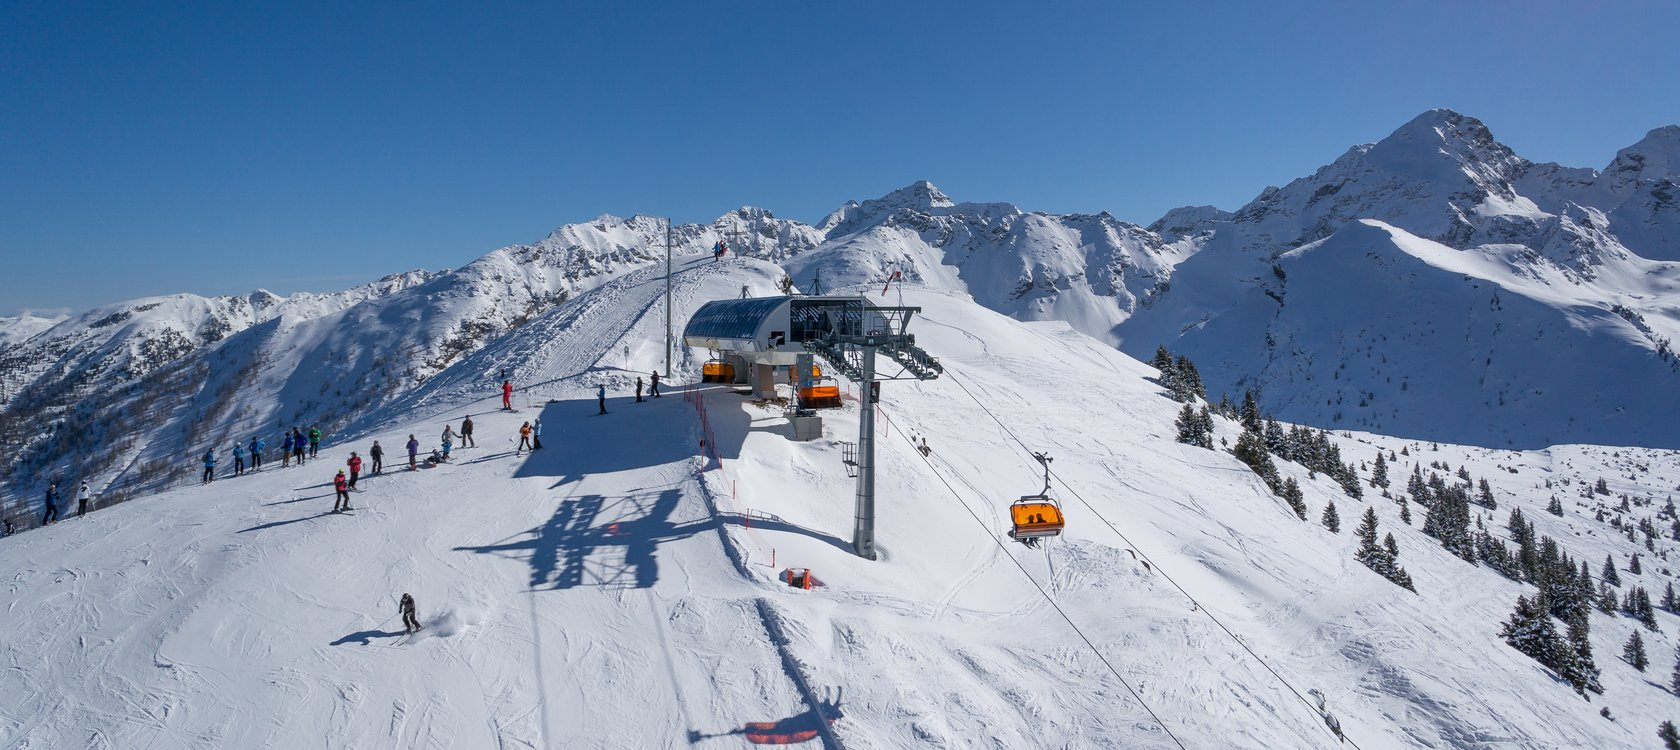 Highest point of the Schladming 4-mountain ski circuit - Hauser Kaibling Gipfelbahn (2.015m).